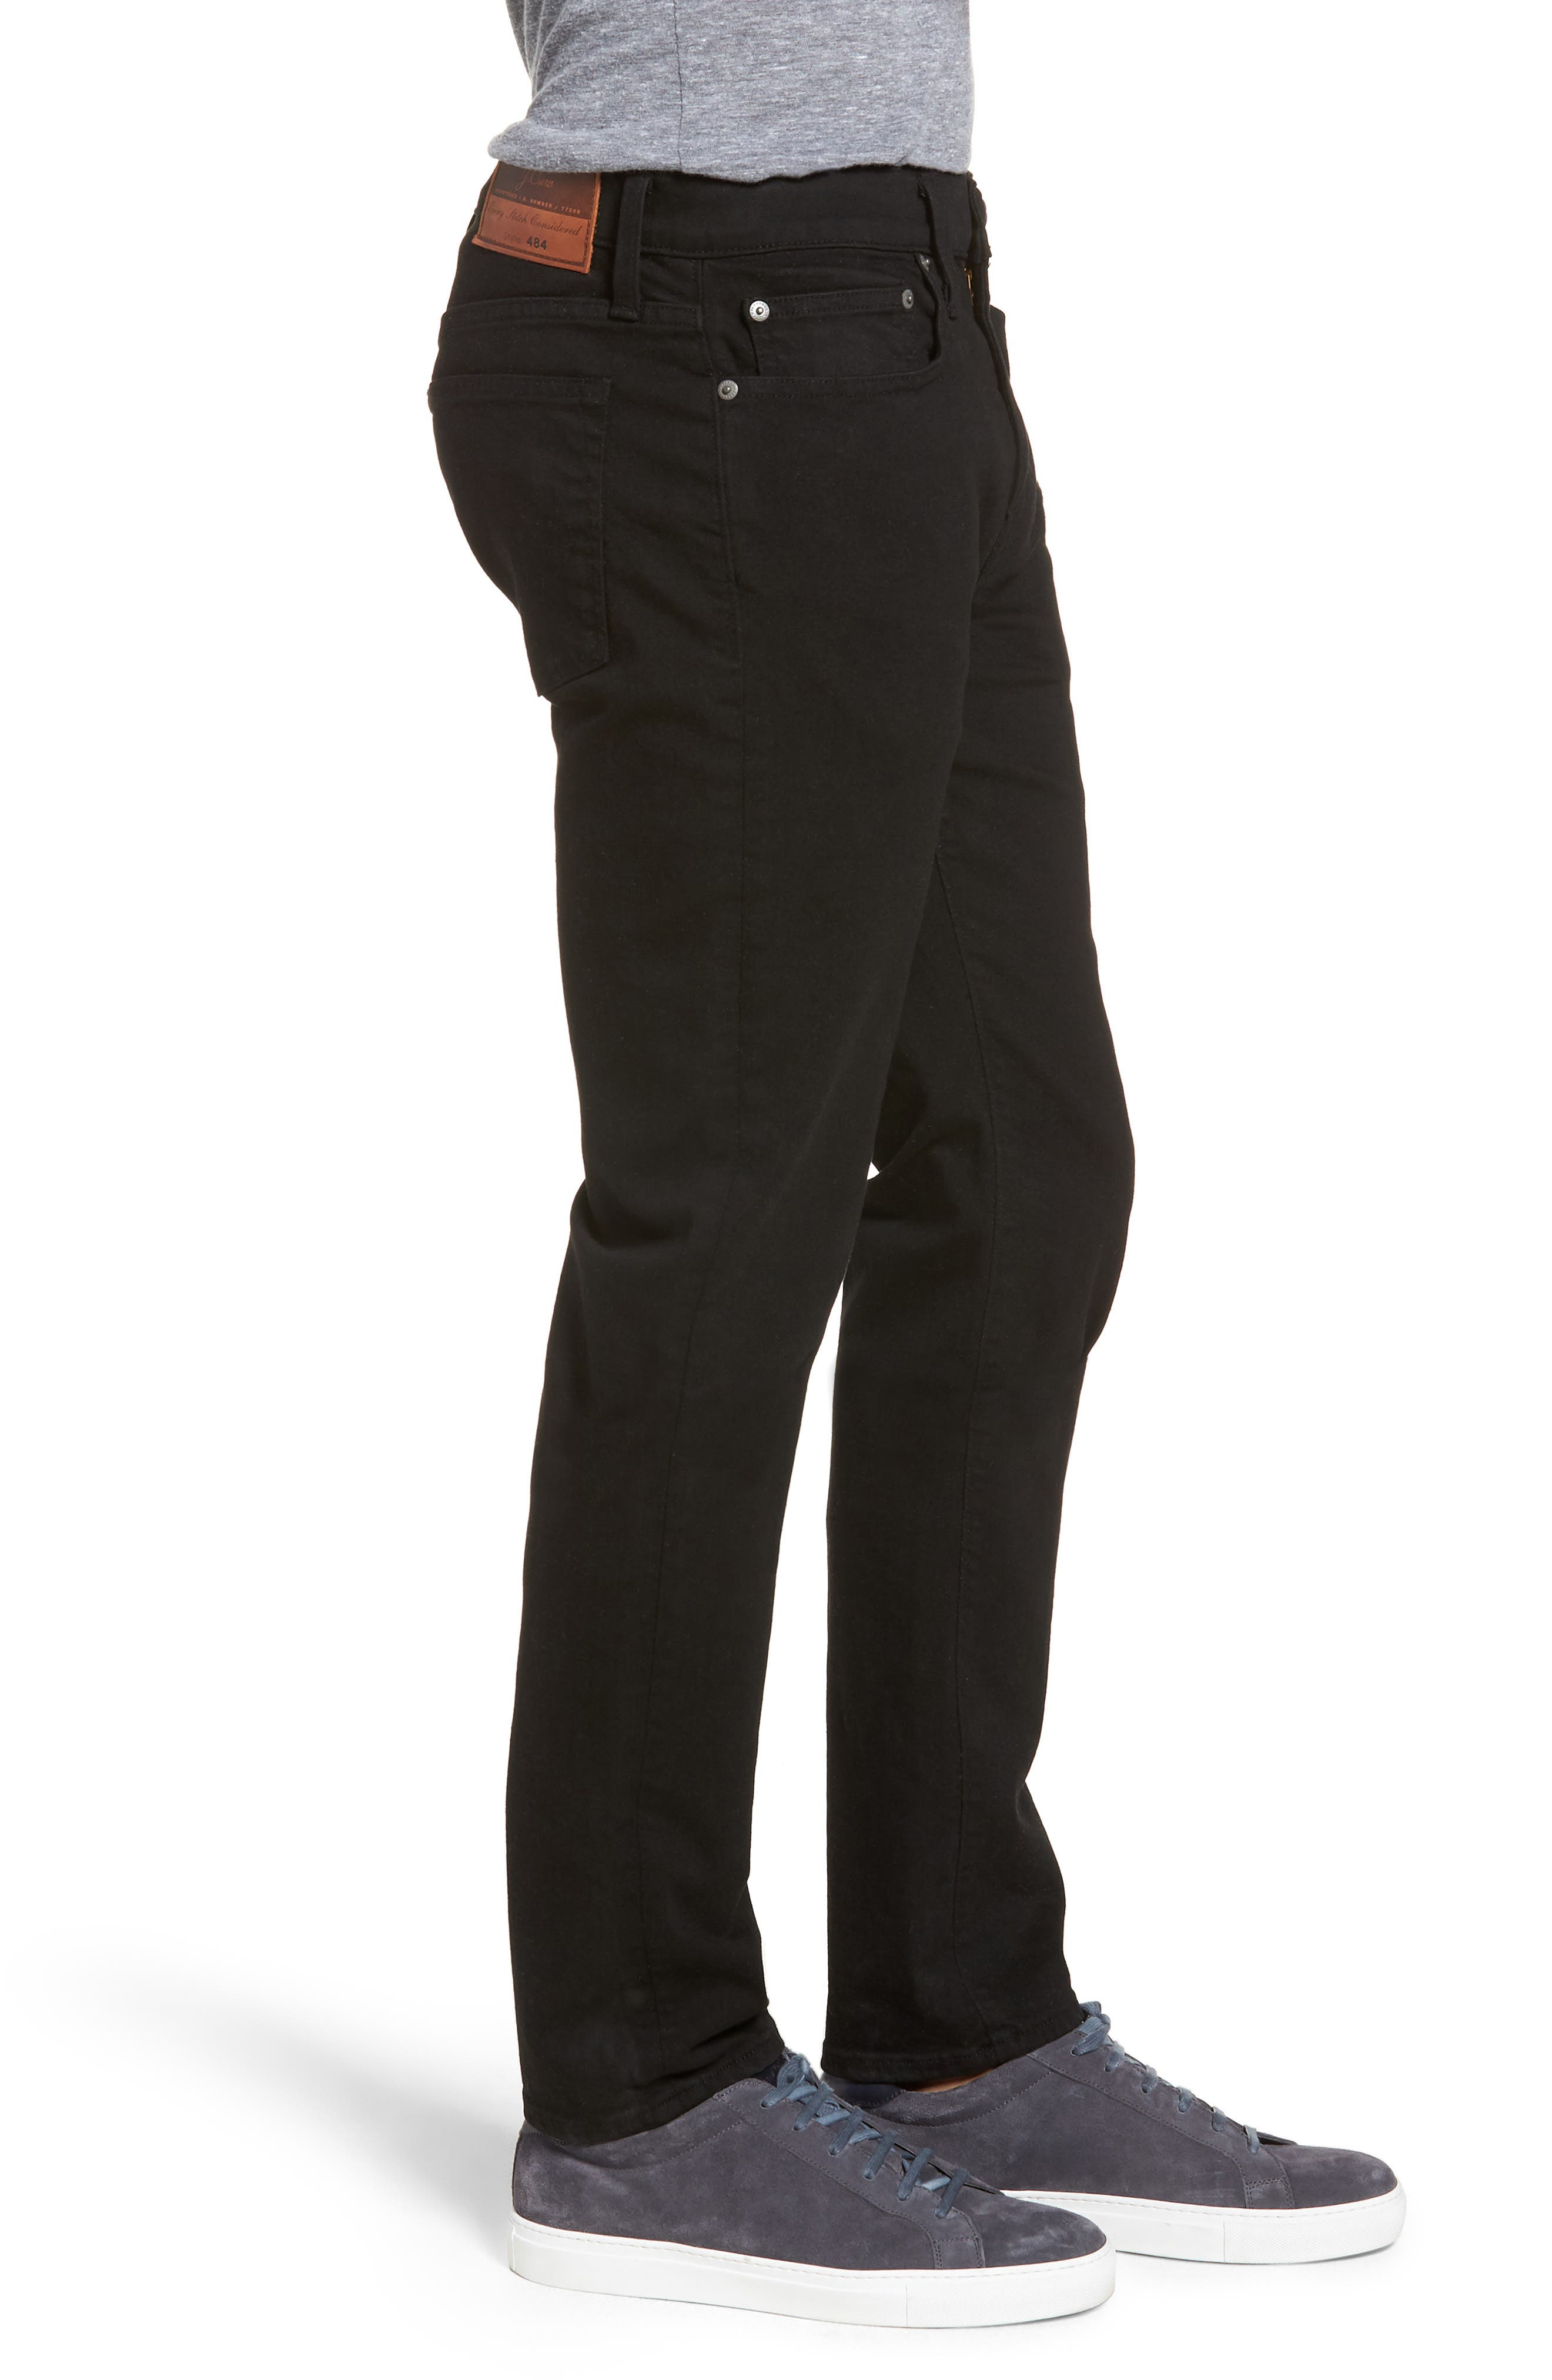 484 Slim Fit Stretch Jeans,                             Alternate thumbnail 3, color,                             Stretch Black